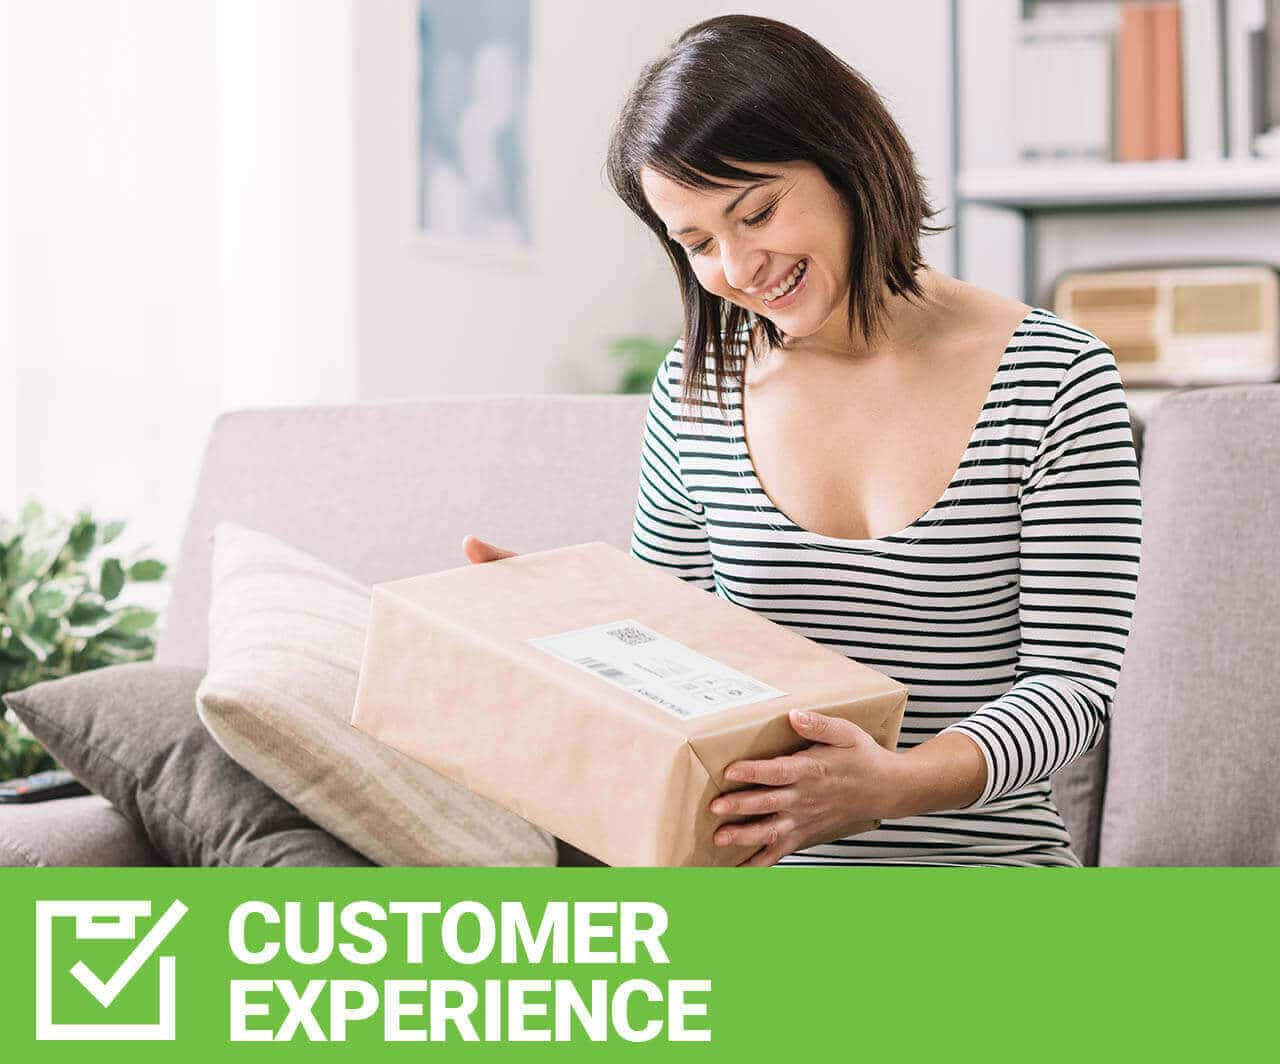 9-CUSTOMER-EXPERIENCE